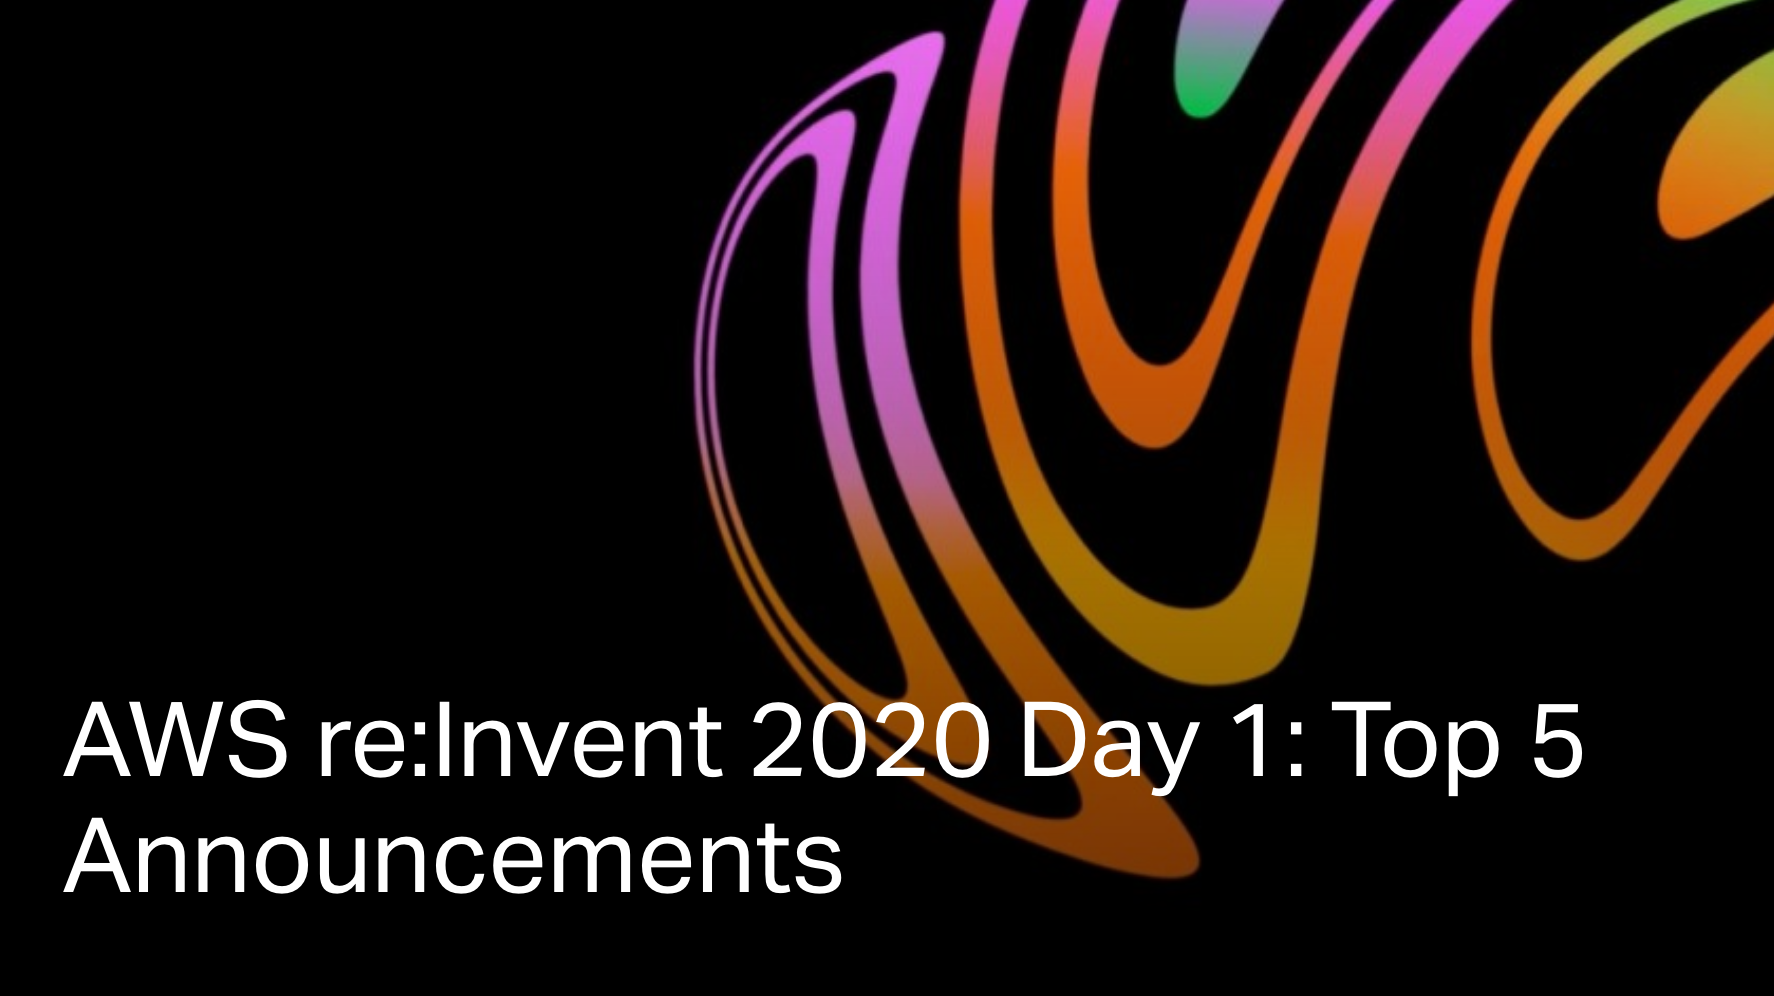 AWS re:Invent 2020 Day 1: Top 5 Announcements